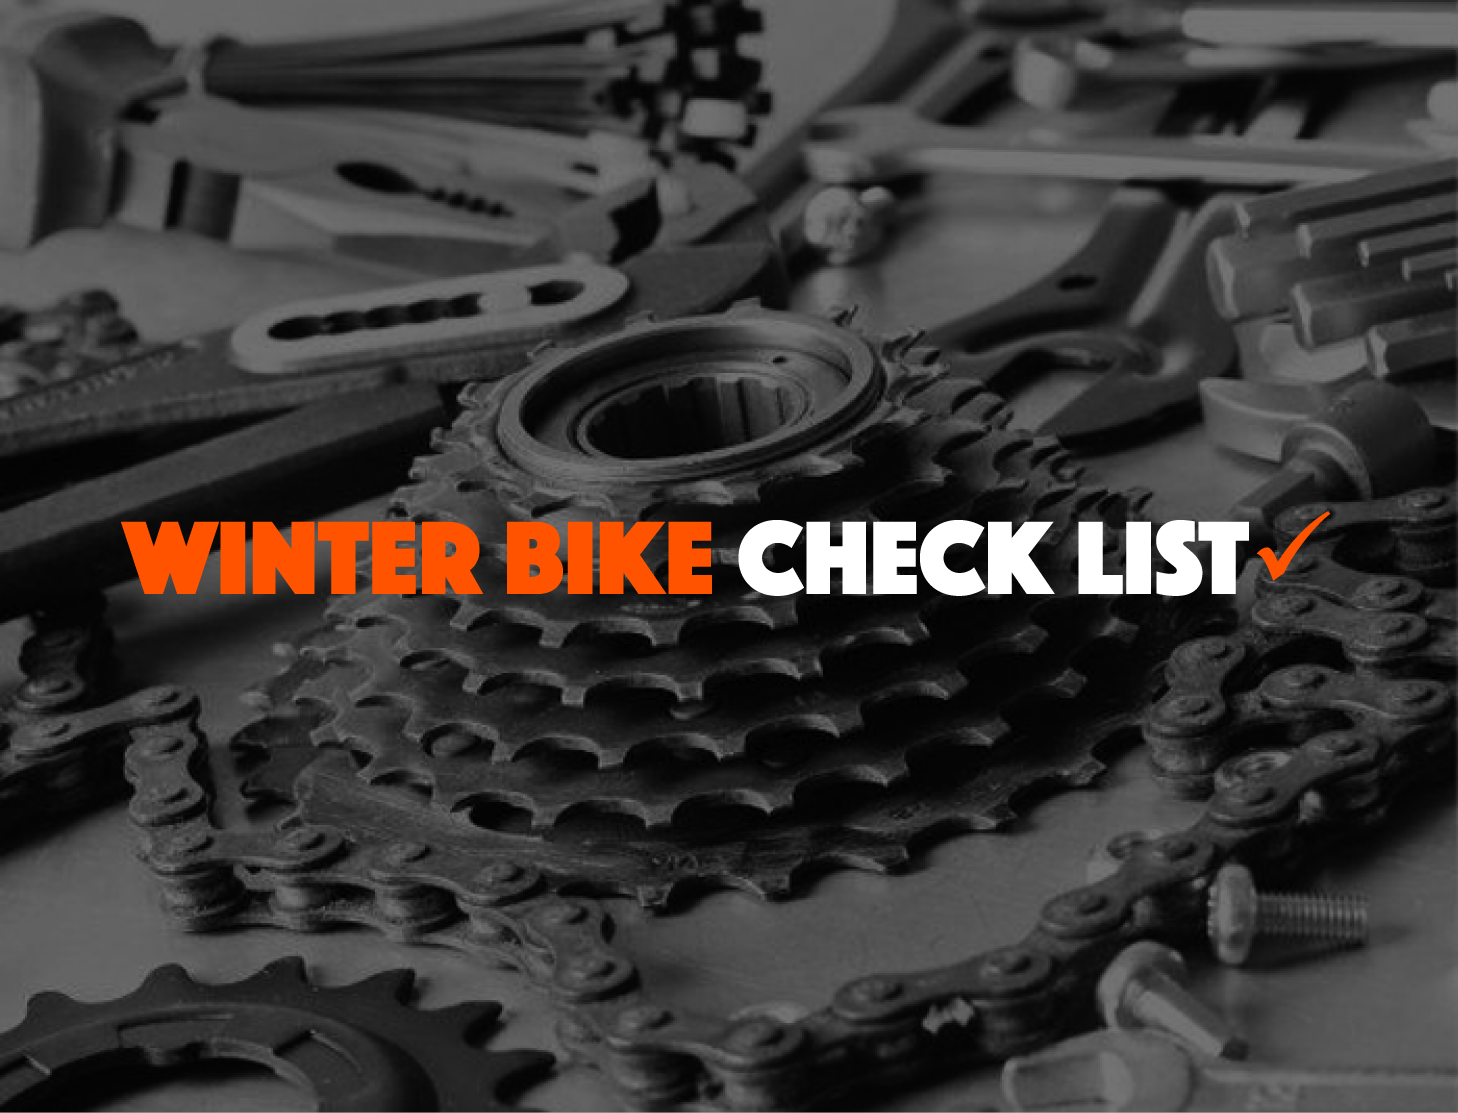 Winter Bike Check List to Perform at Home